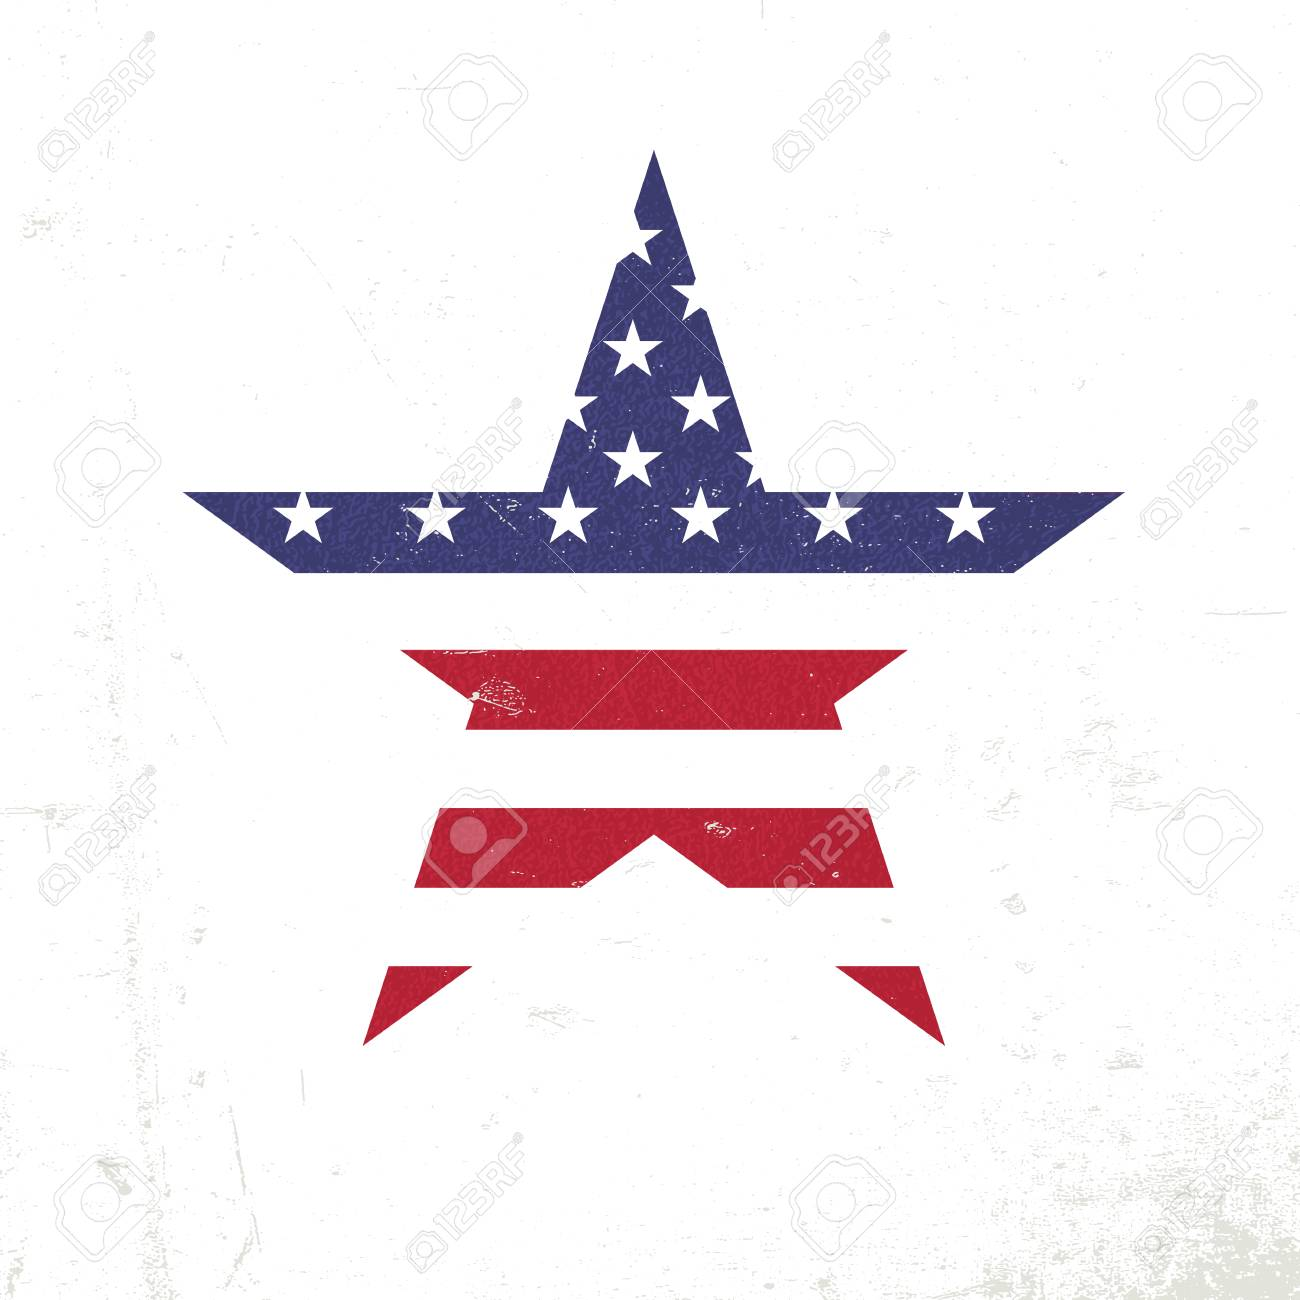 american flag in star shape patriotic design template grunge